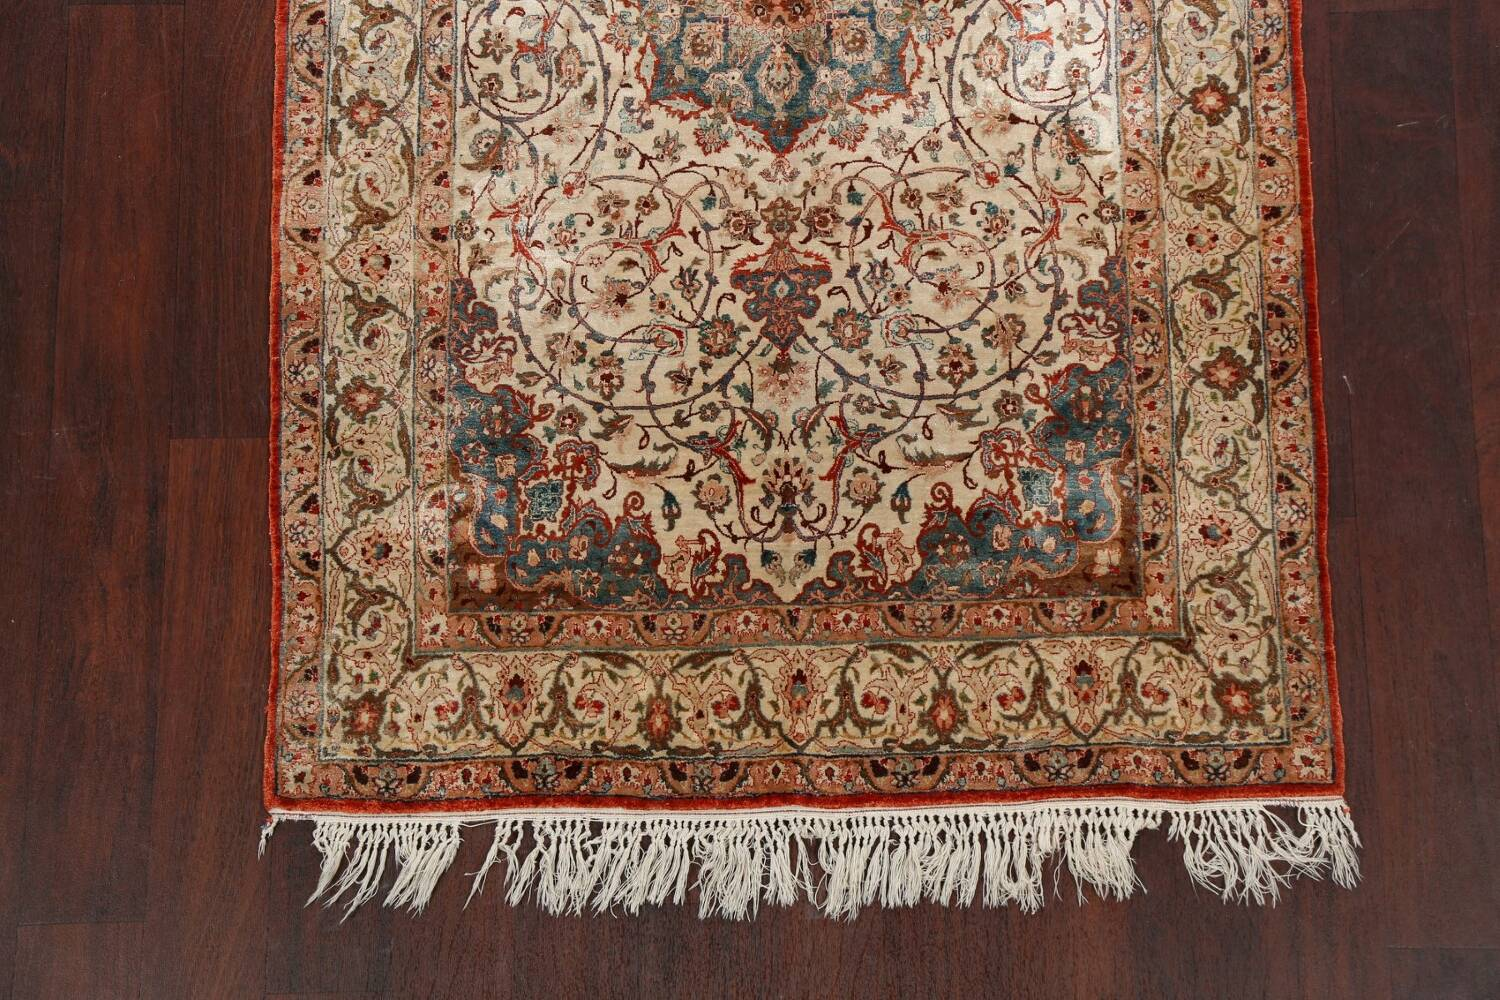 Antique 100% Vegetable Dye Isfahan Persian Area Rug 4x6 image 8